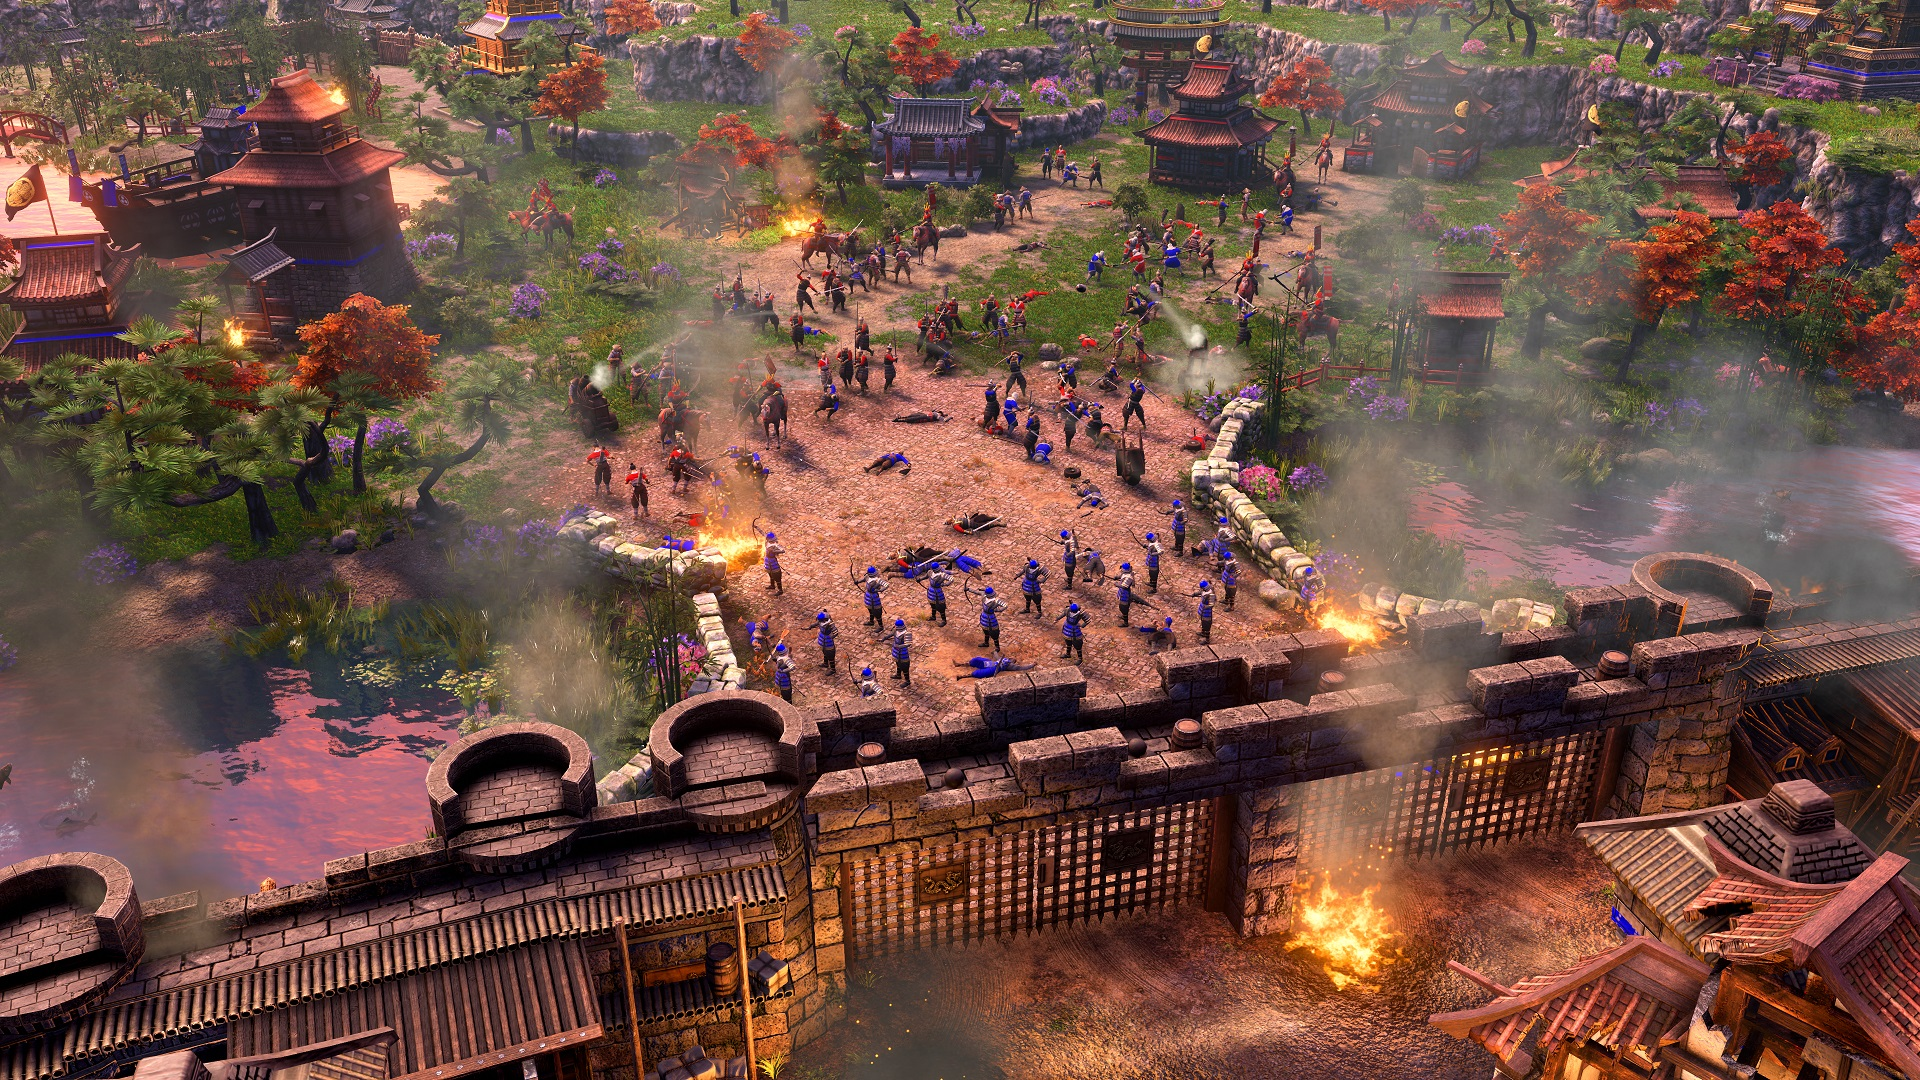 Japanese in Age of Empires III: Definitive Edition